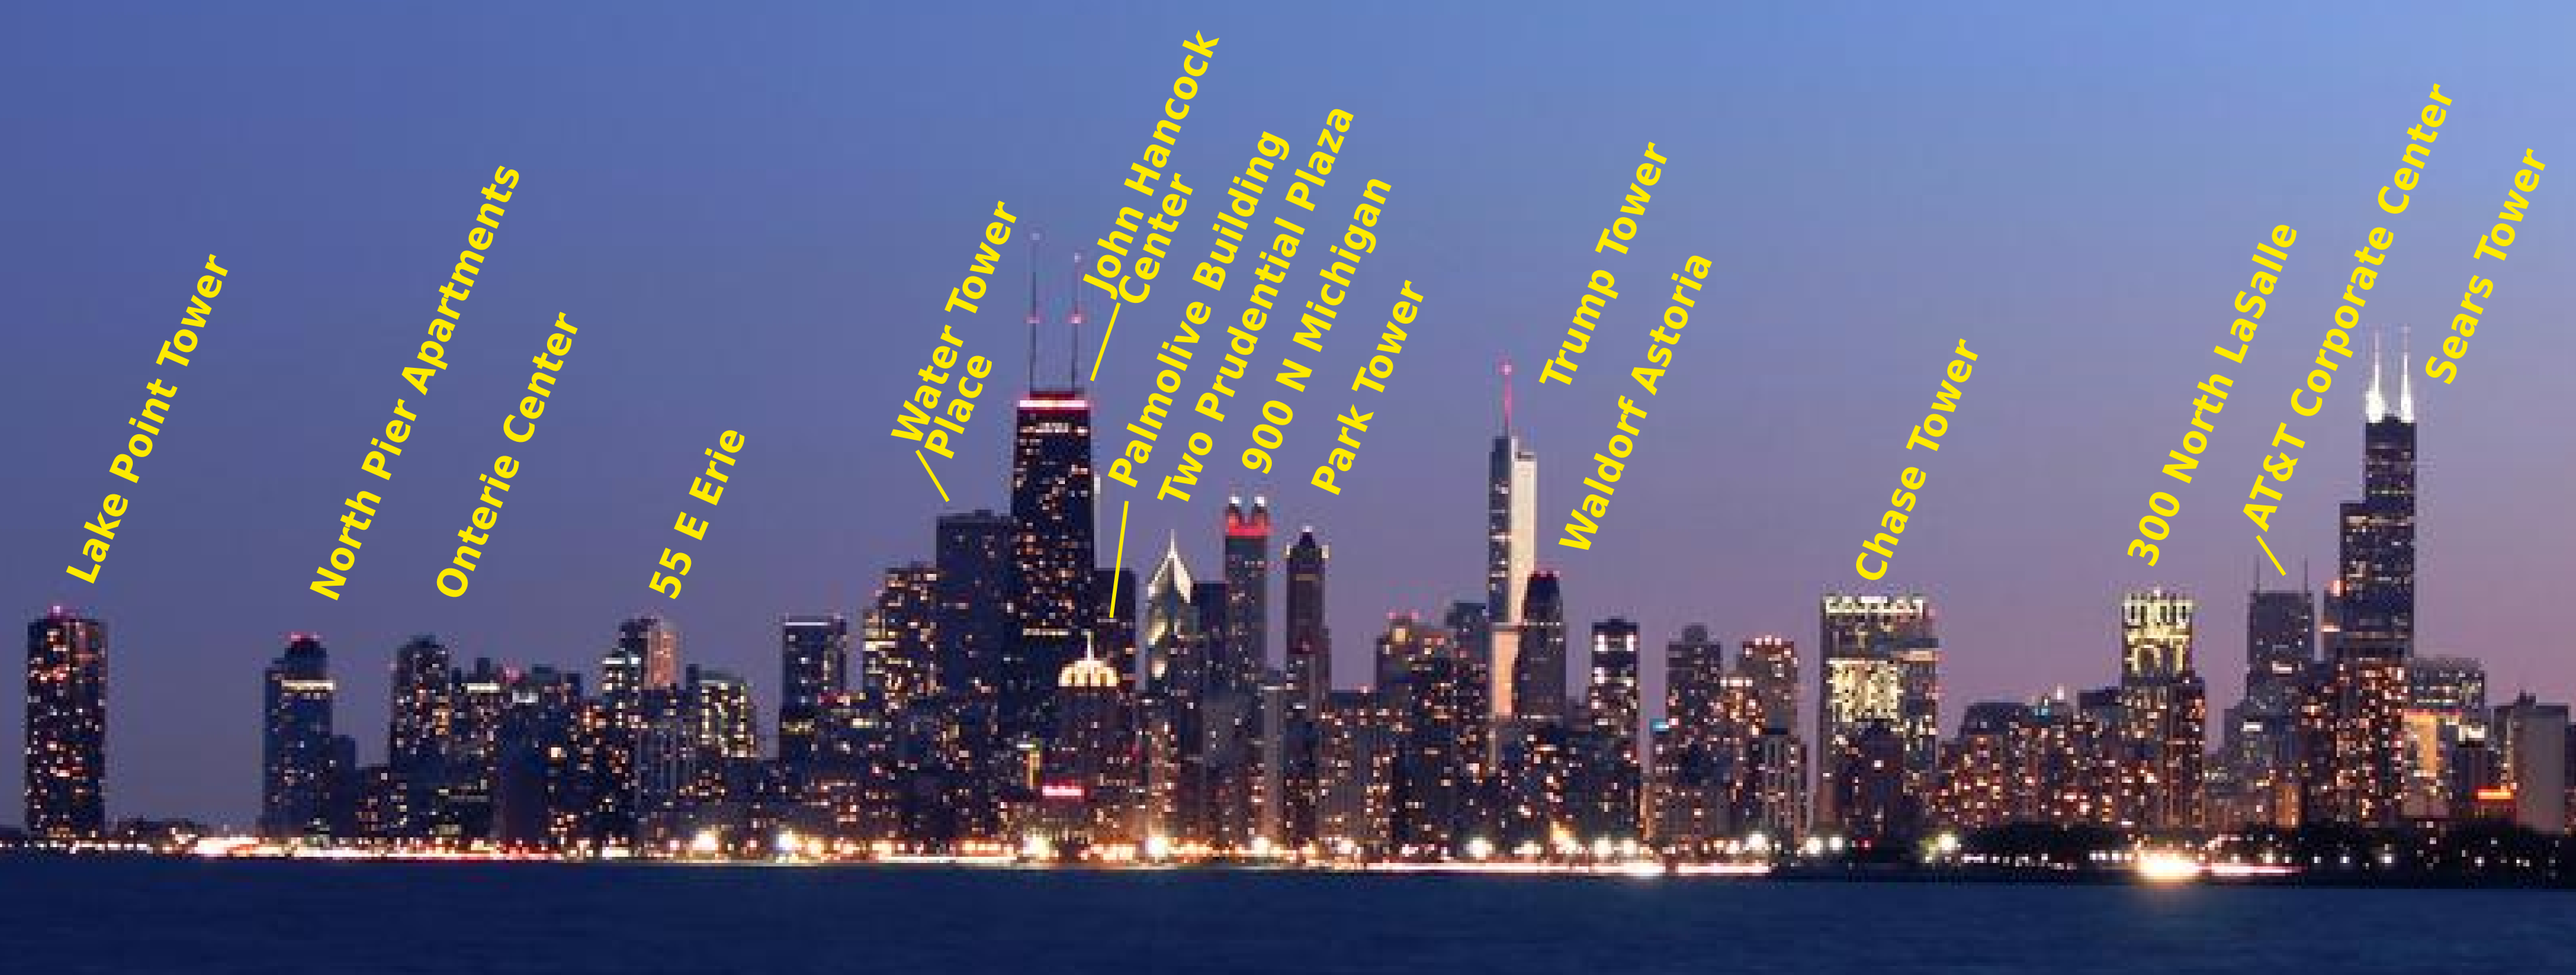 chicago vs nyc dating scene Matchcom survey uncovers chicago's dating scene compared to other big cities like new york city and los angeles, the chicago dating scene has huffpost news.